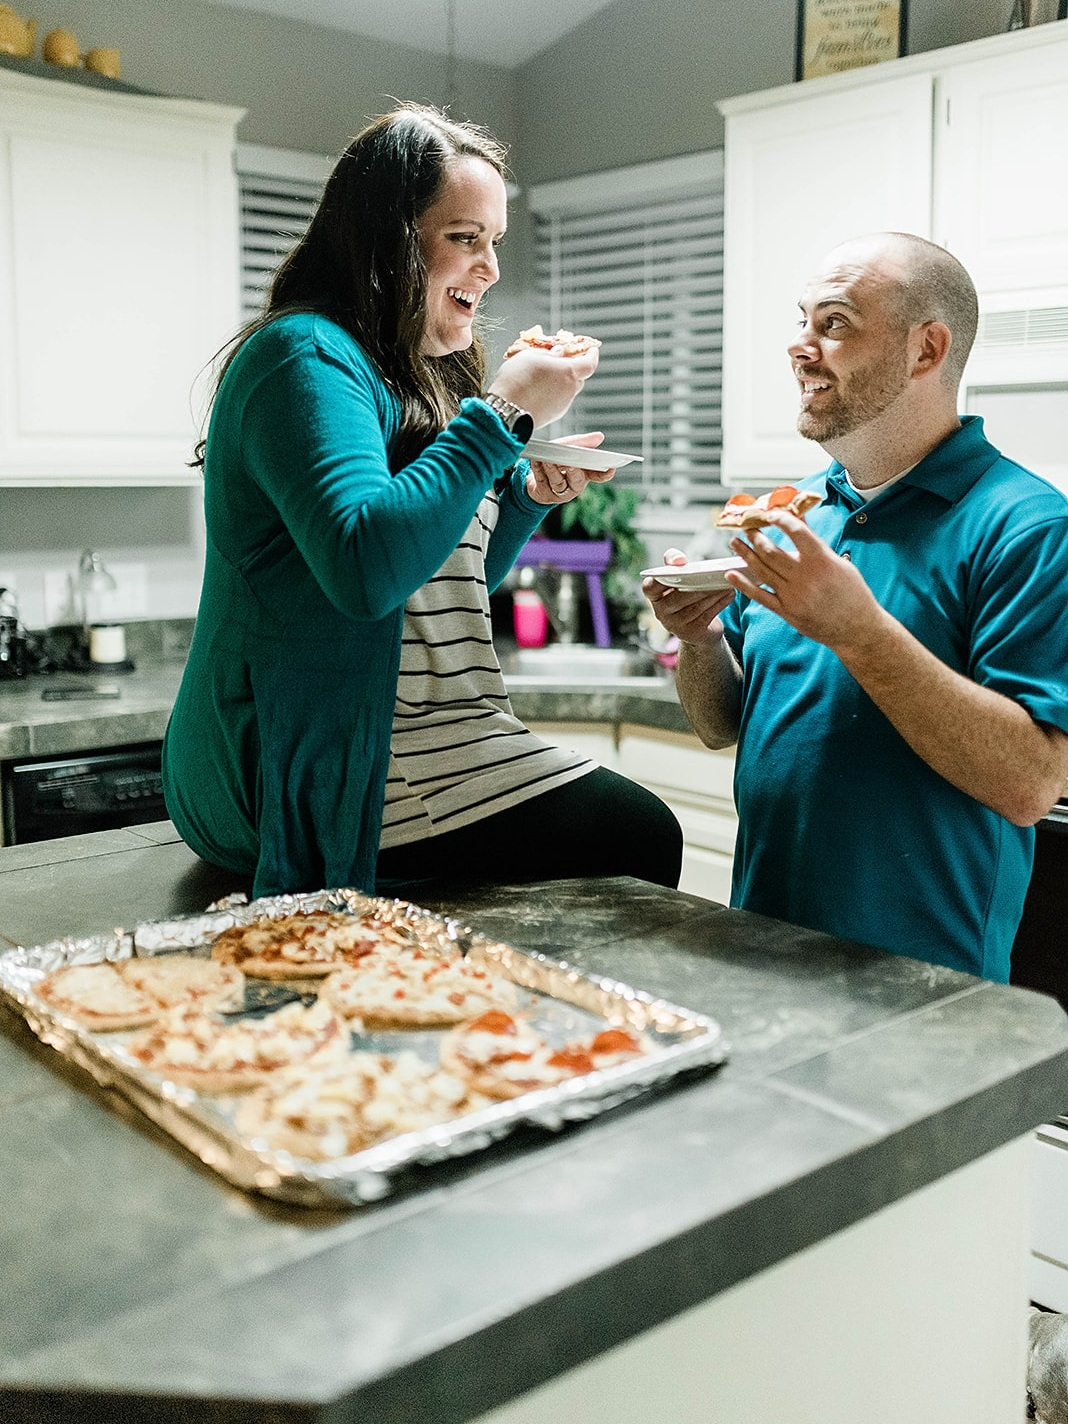 build your own pizza - date night at home